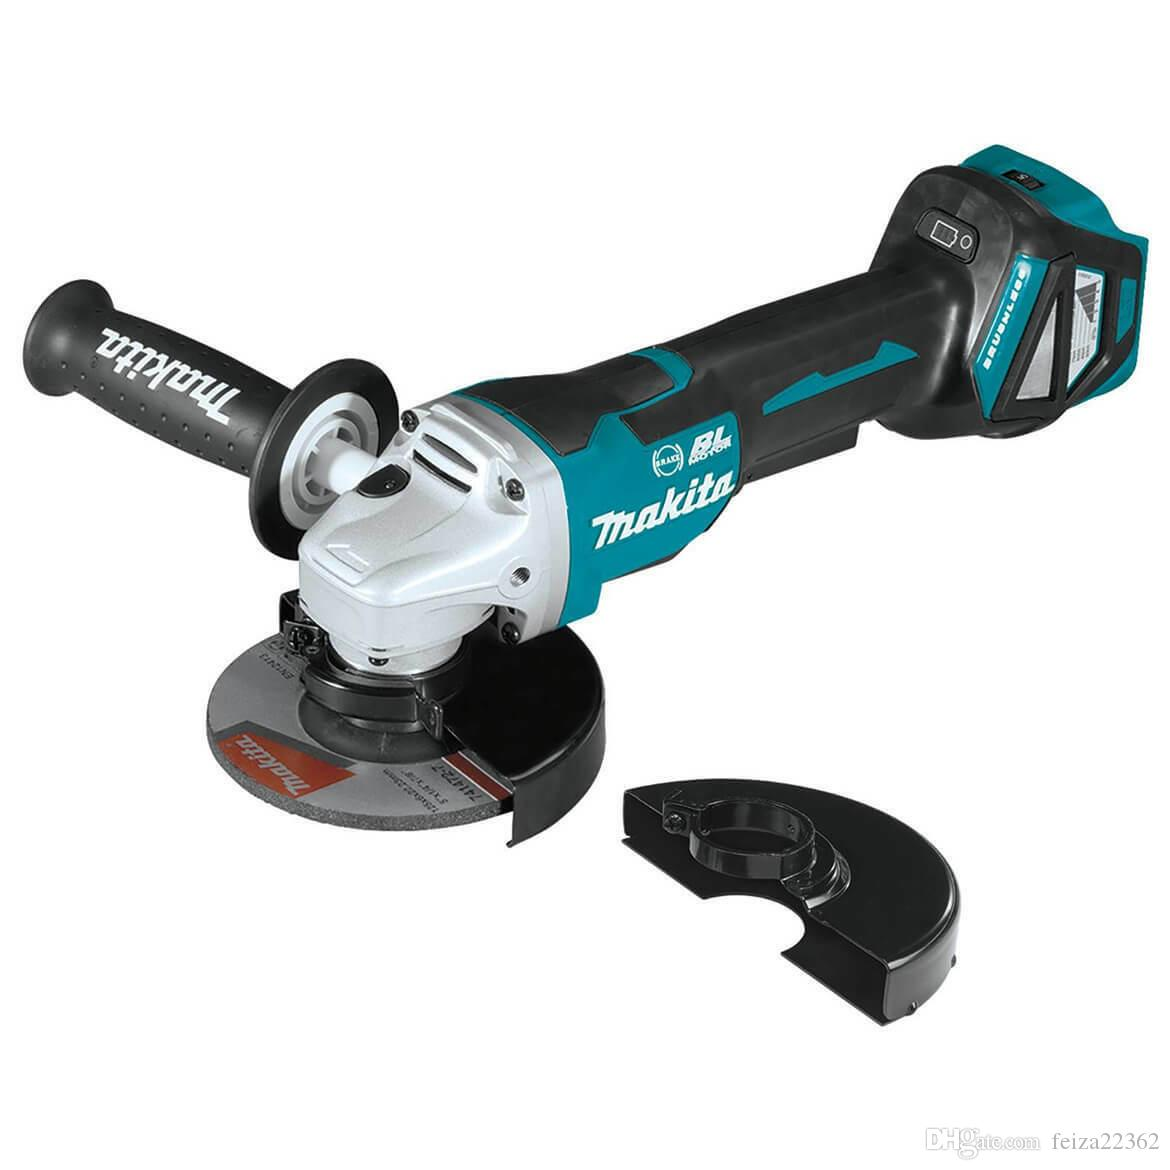 Makita XAG20Z 18-Volt Brake Paddle Switch Cut-Off/Angle Grinder - Bare Tool